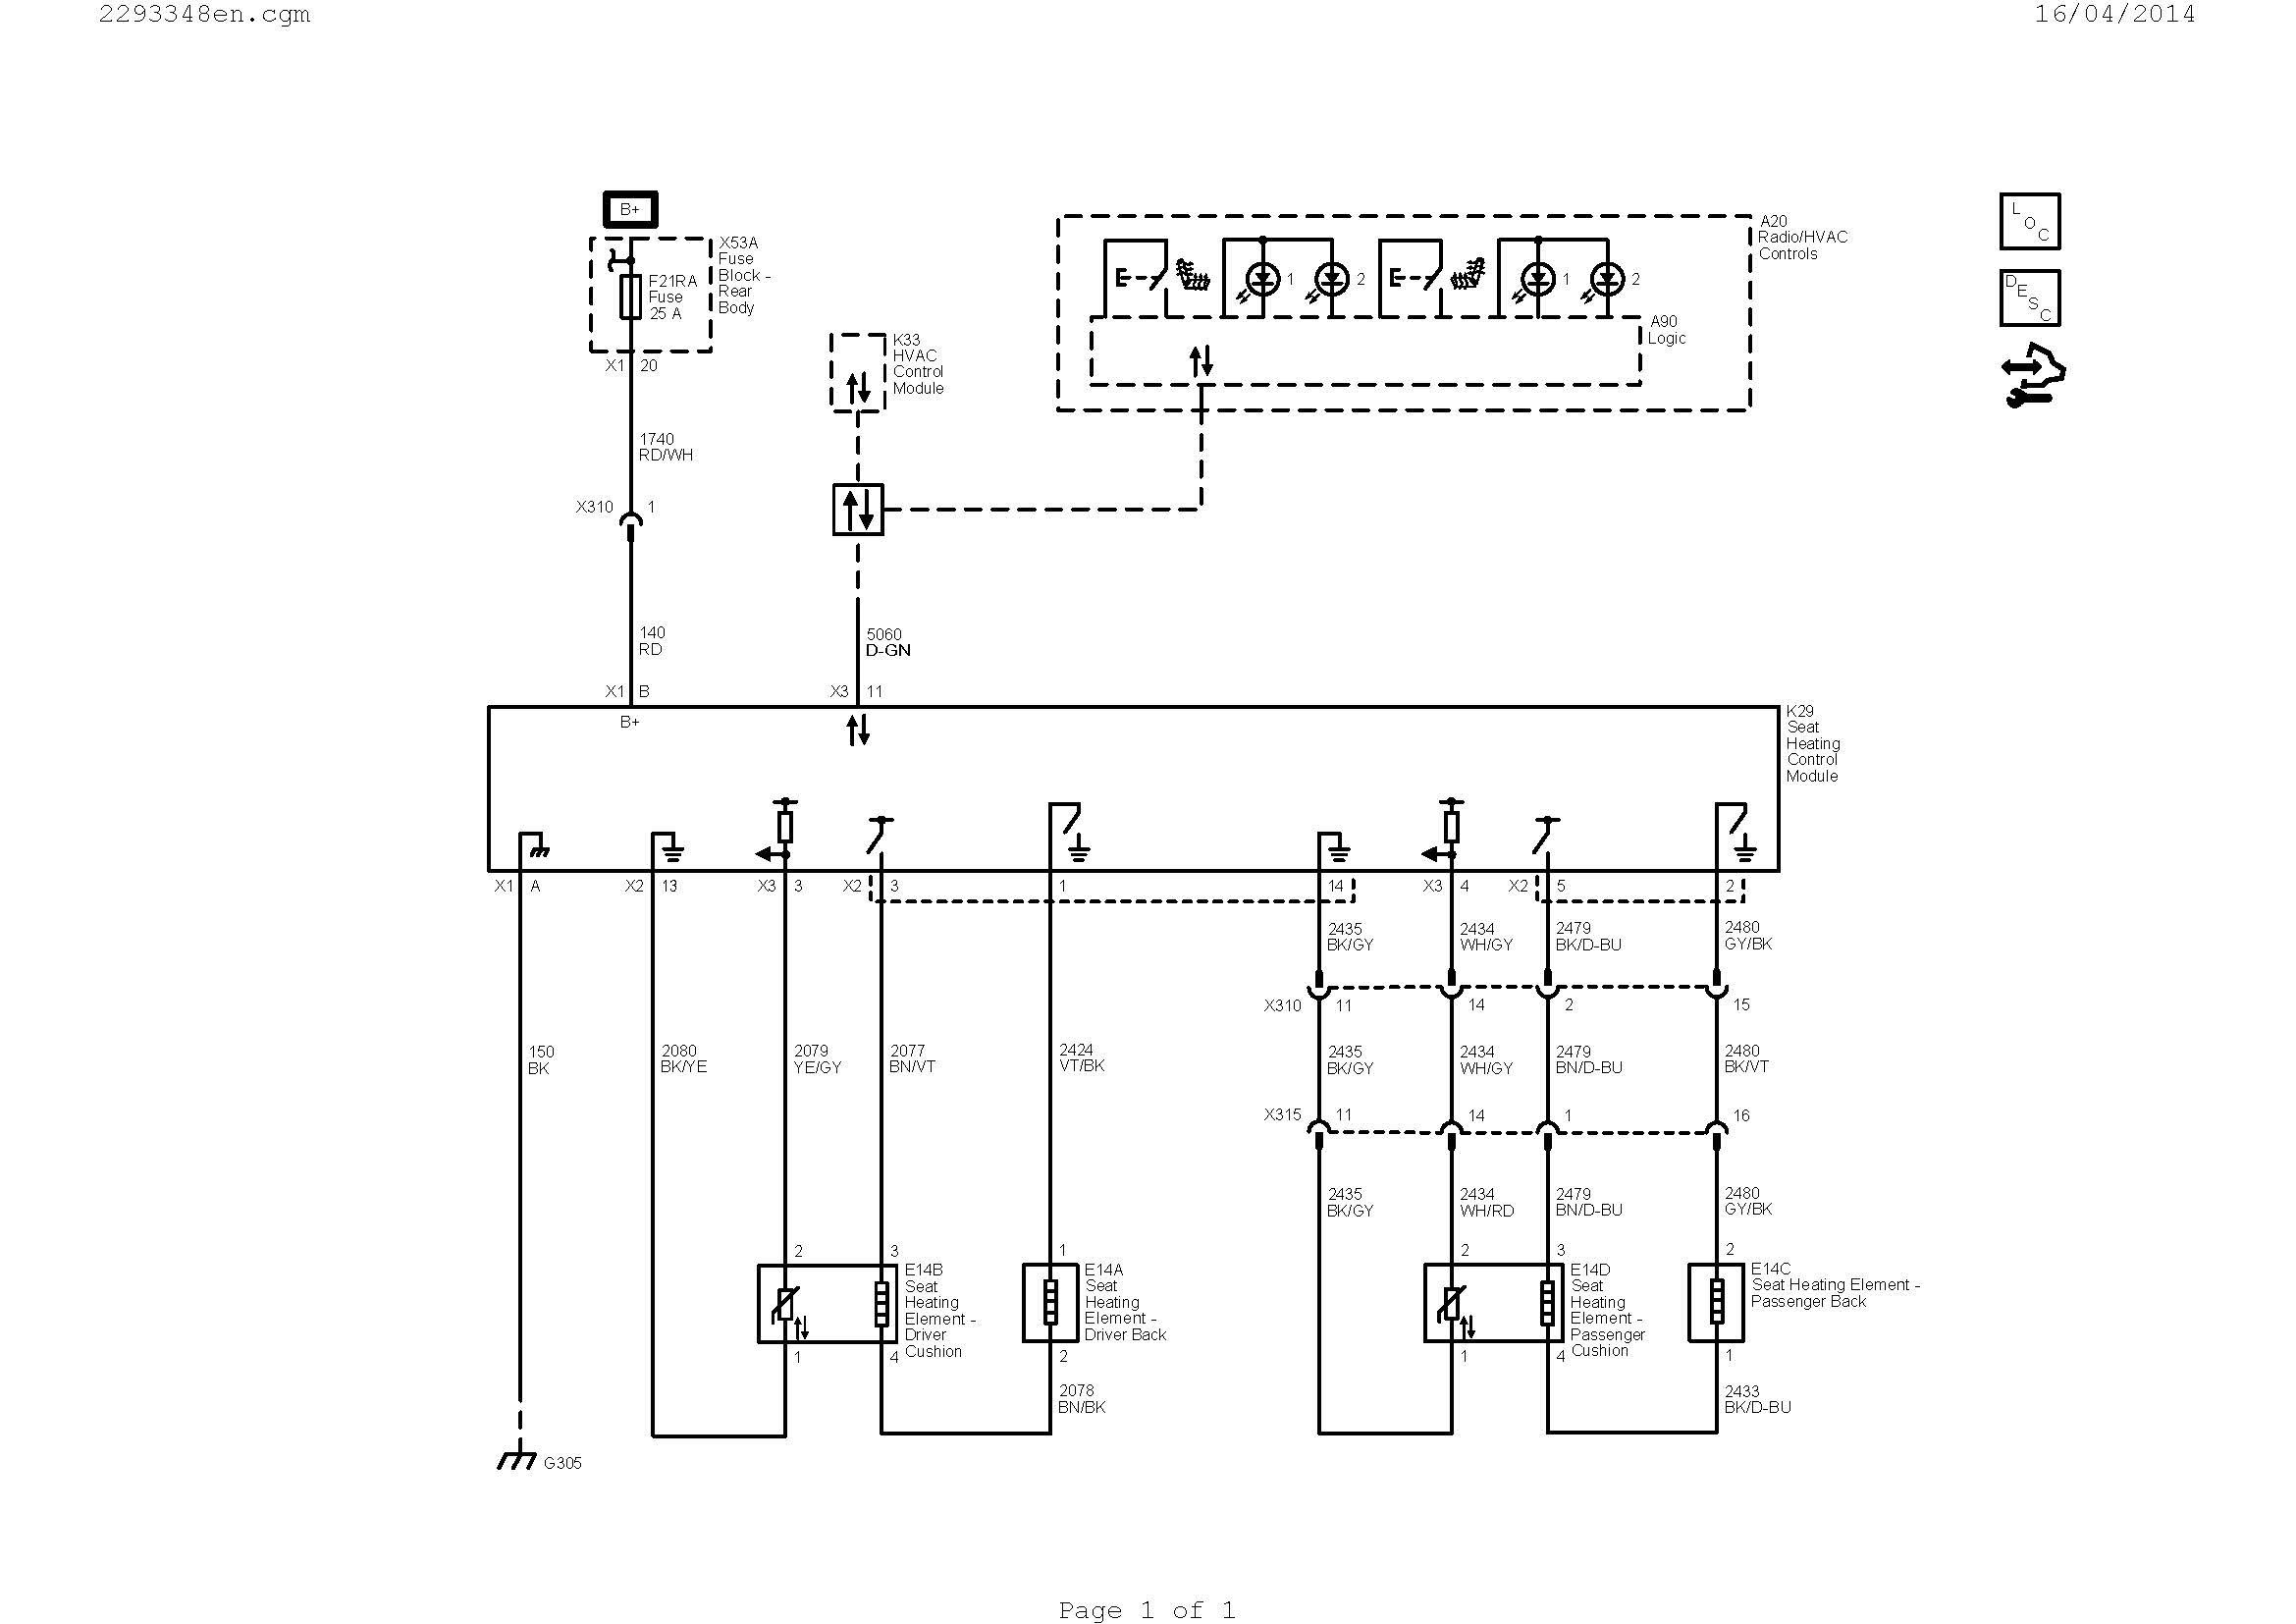 furnace wiring diagram Download-electric heater wiring diagram Collection Wiring Diagrams For Central Heating Refrence Hvac Diagram Best Hvac DOWNLOAD Wiring Diagram 6-j